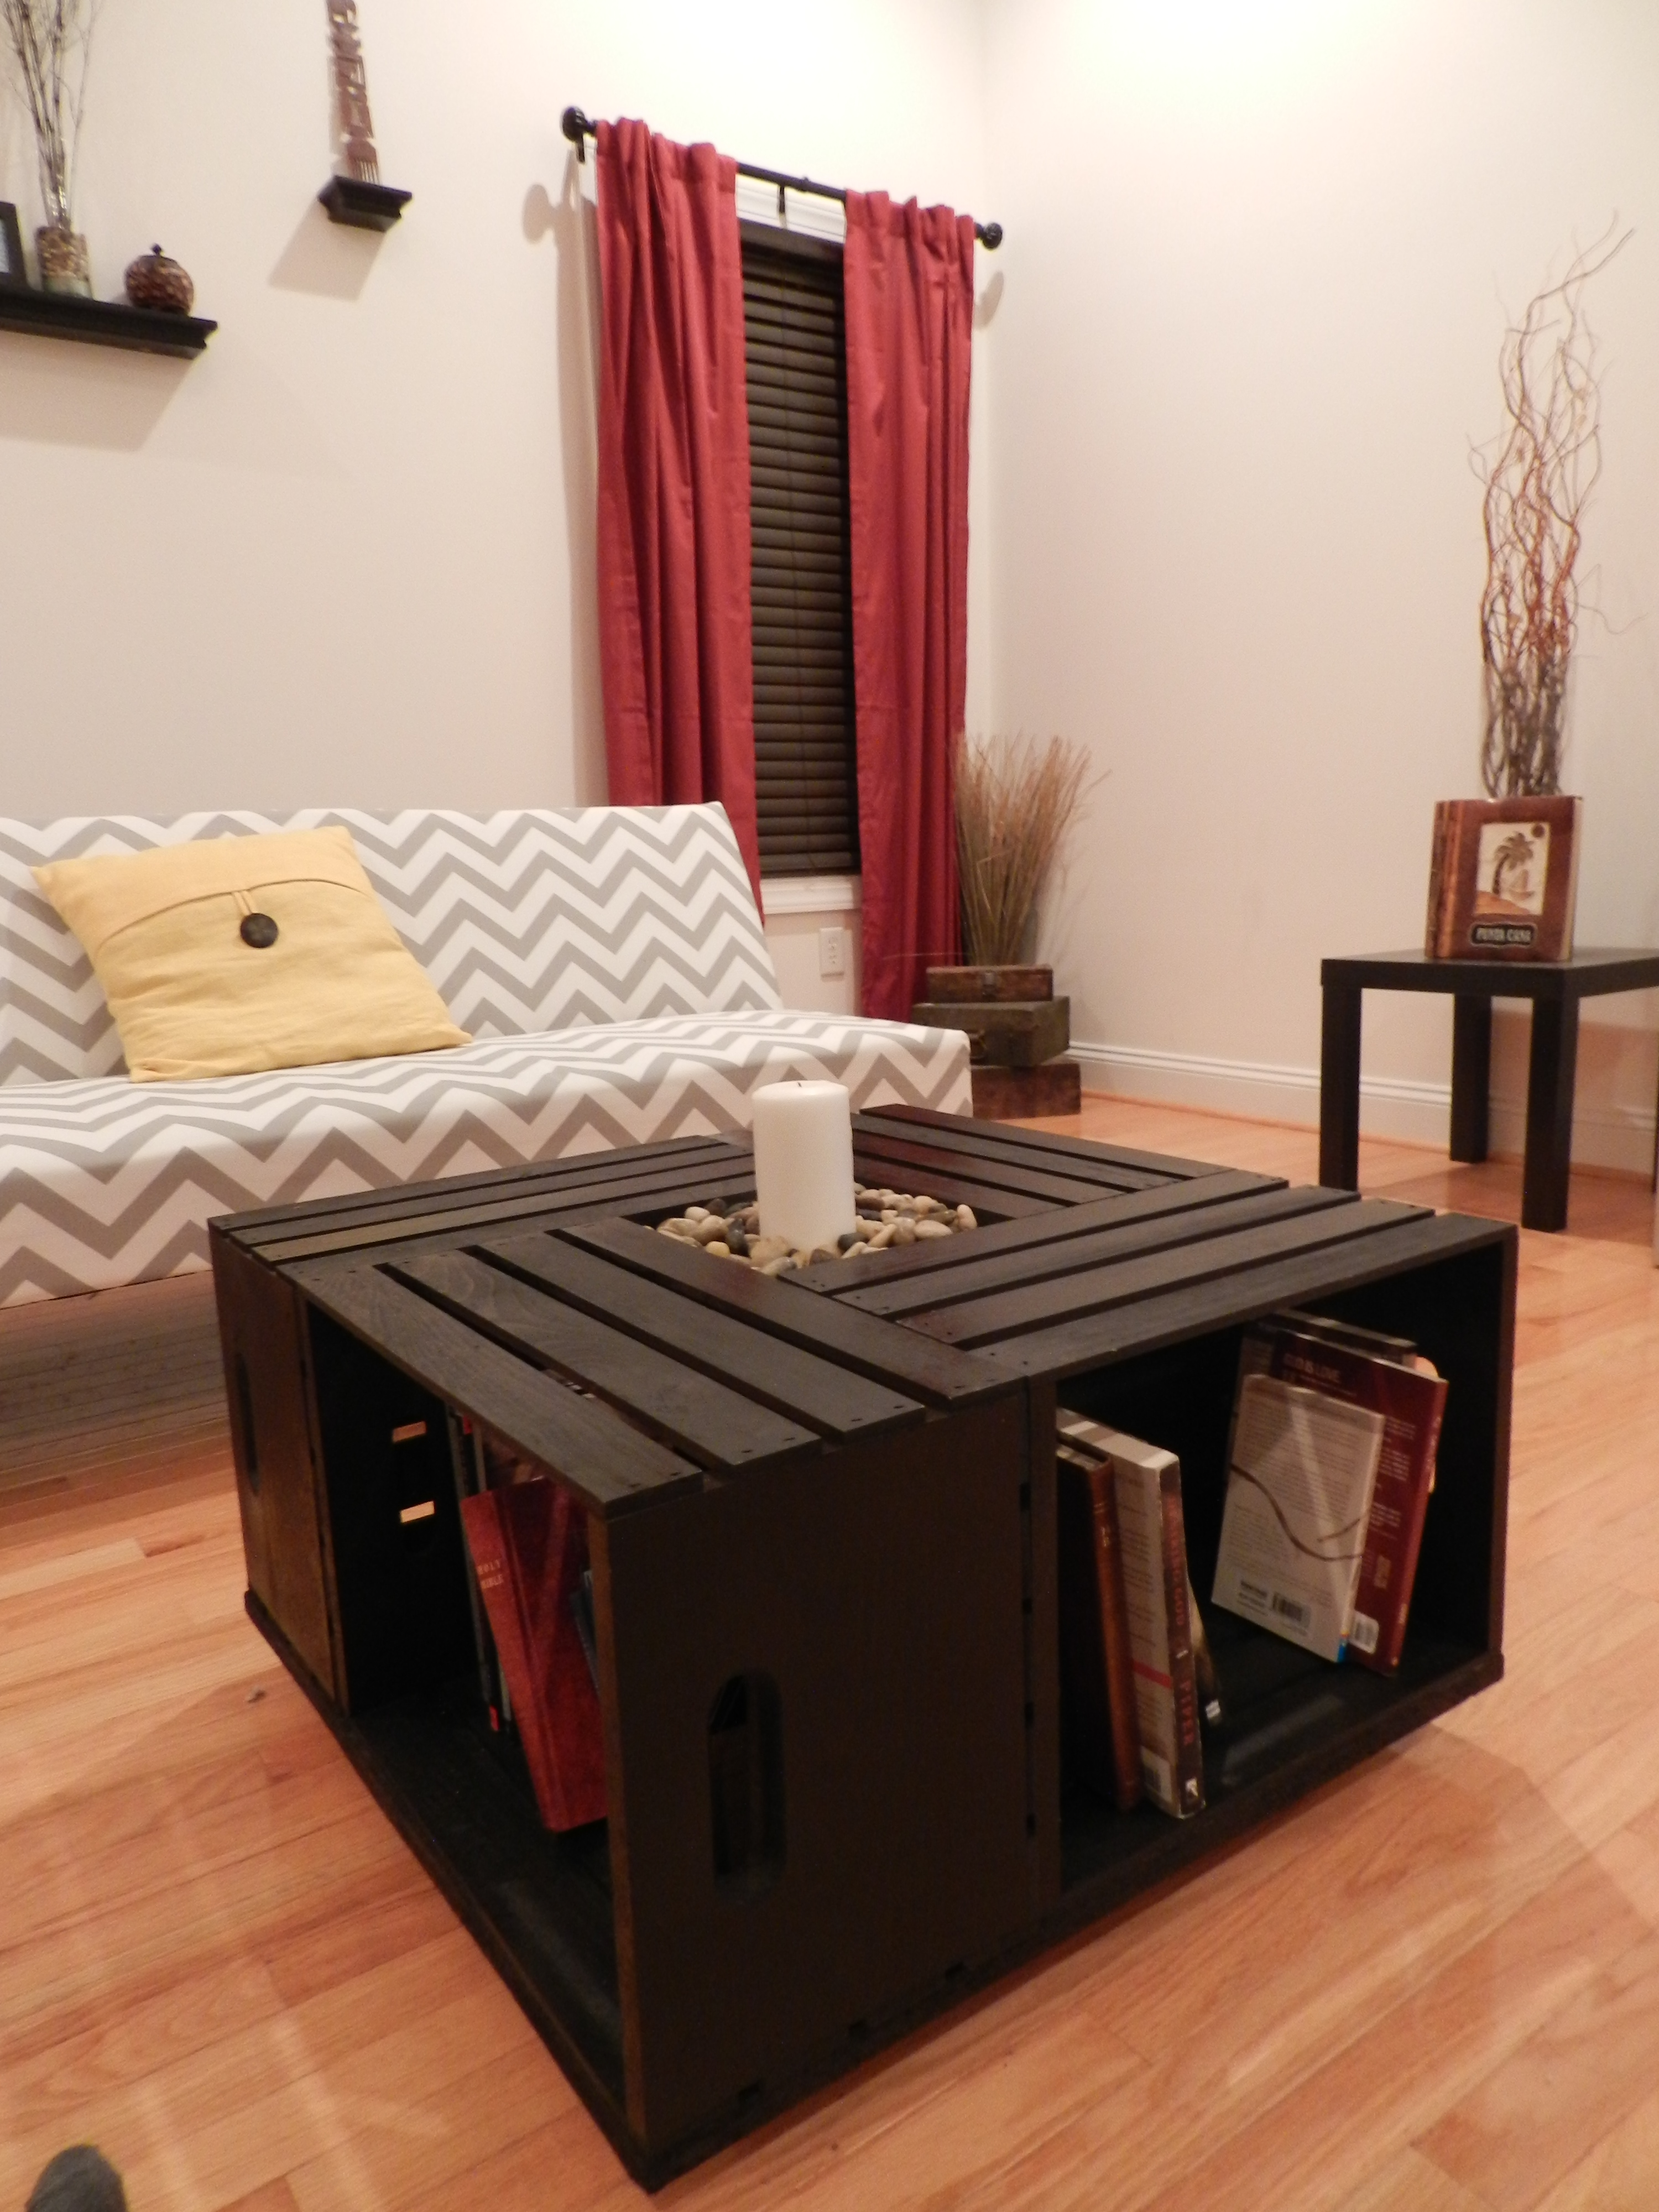 Wooden crate coffee table 183 crate creations 183 online store powered